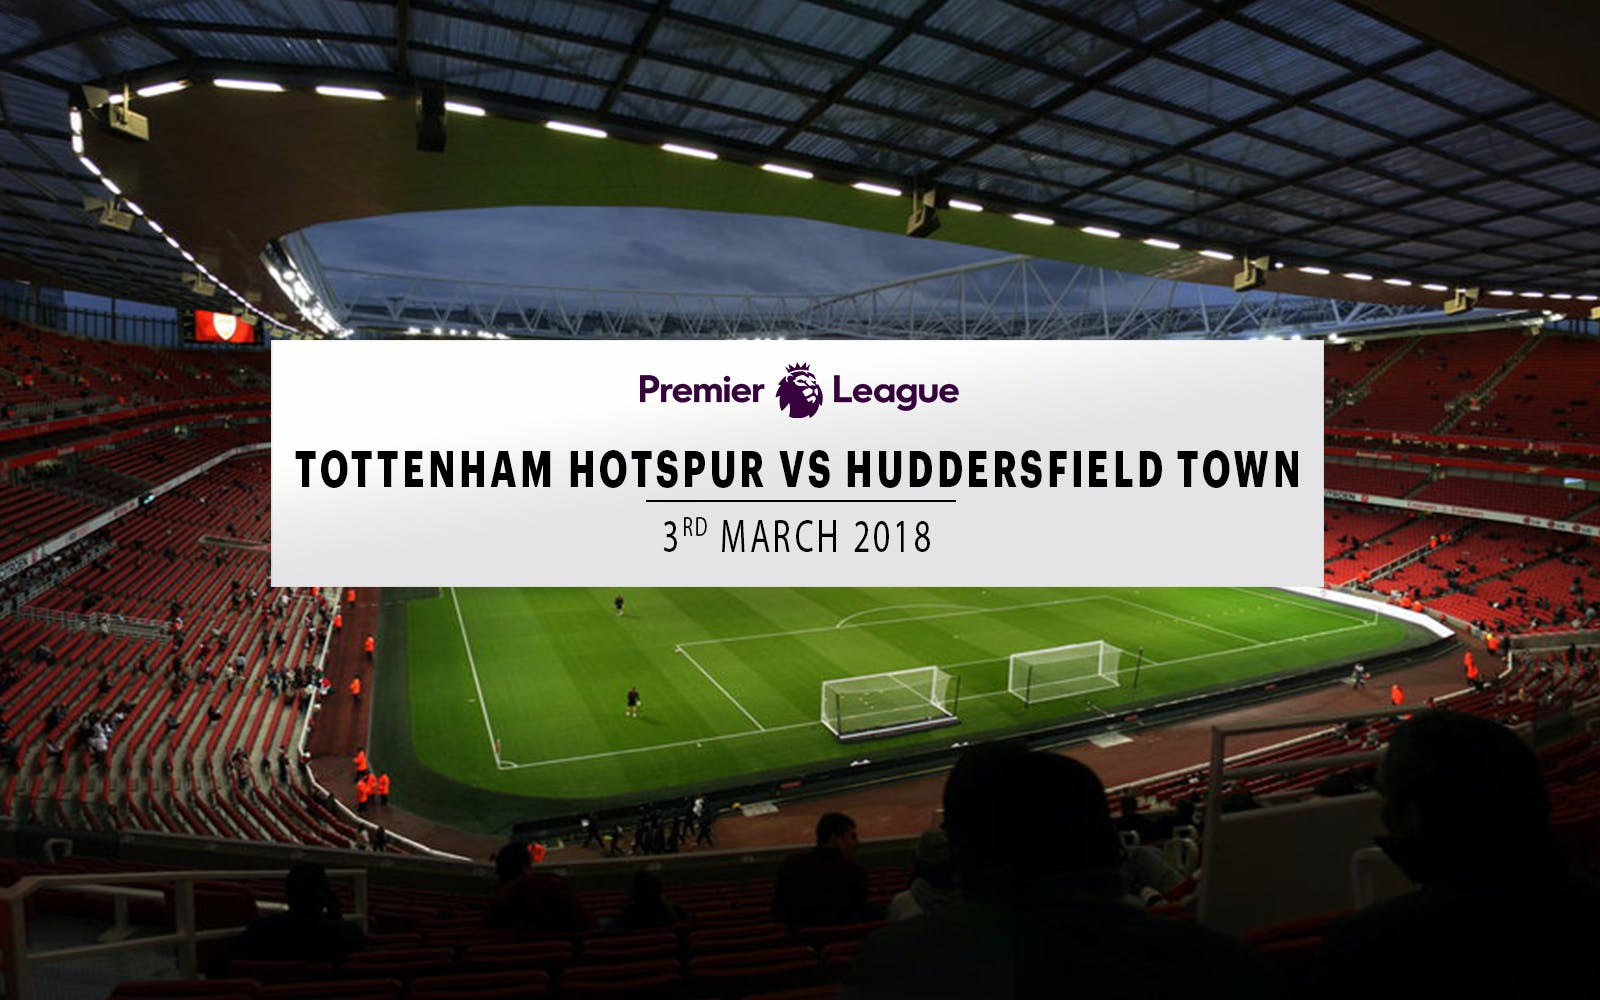 tottenham hotspur vs huddersfield town - 3rd march 2018-1